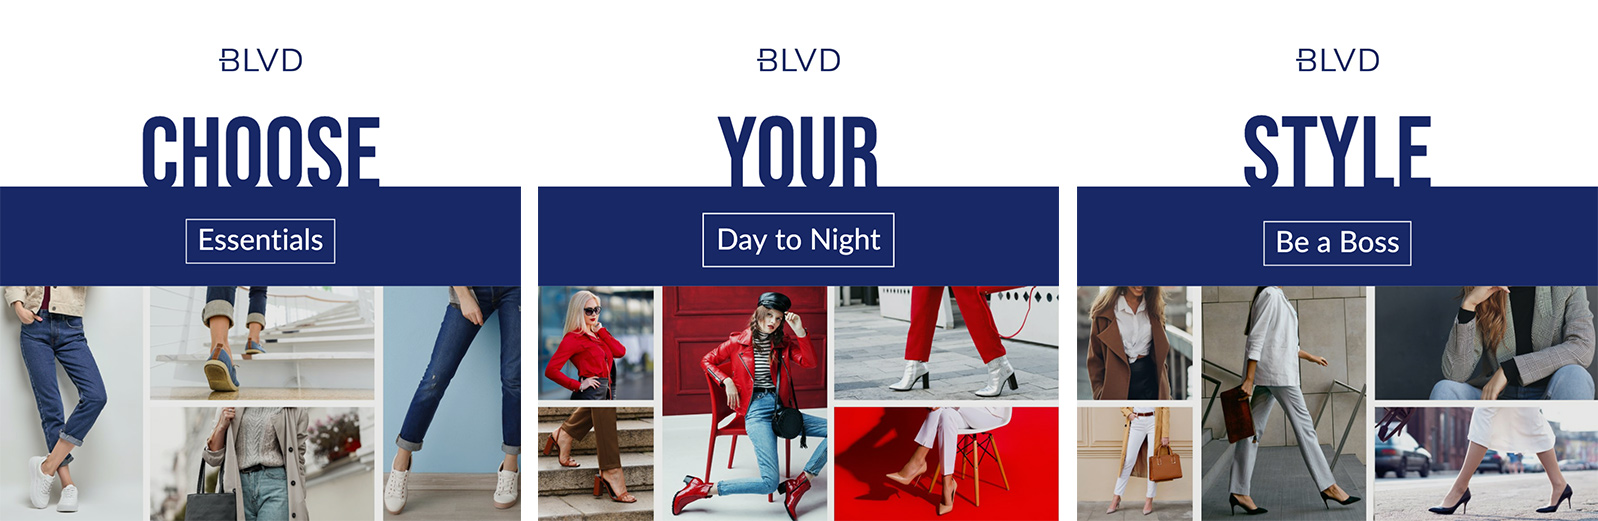 retail shoe store marketing chooose your style campaign